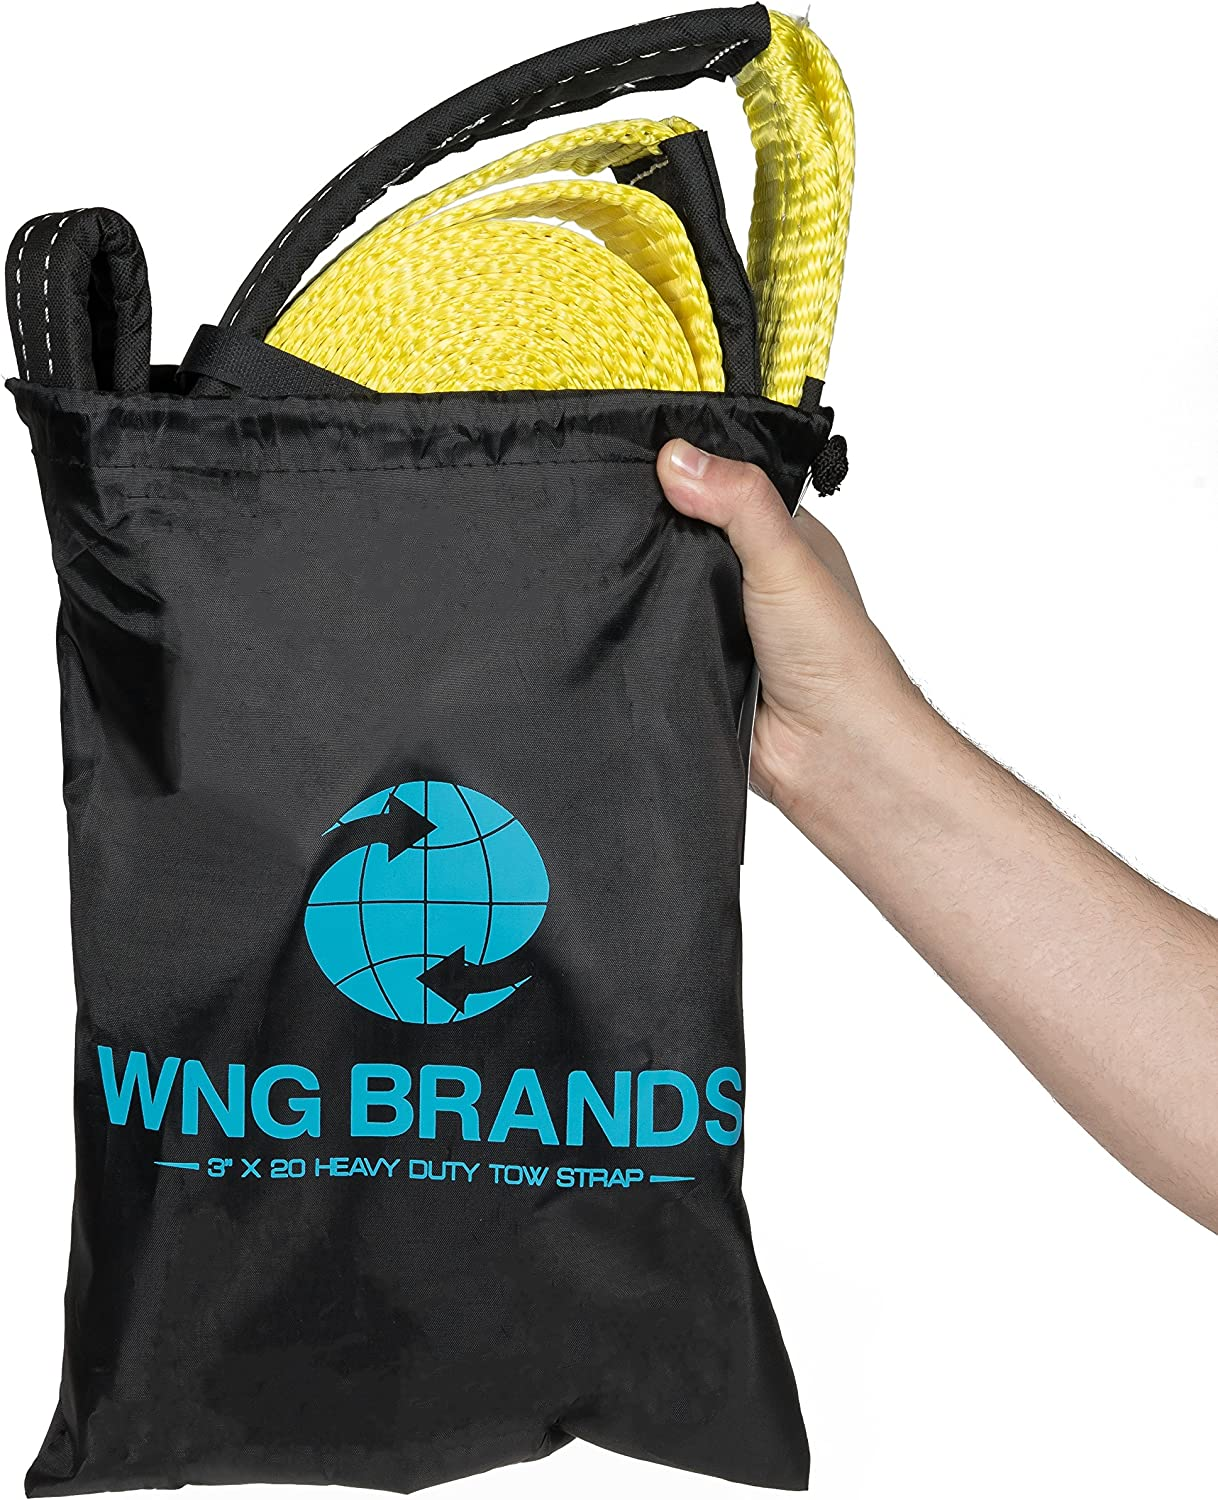 WNG Brands Recovery Heavy Duty Vehicle Tow Strap /& Durable Off Road Tree Saver